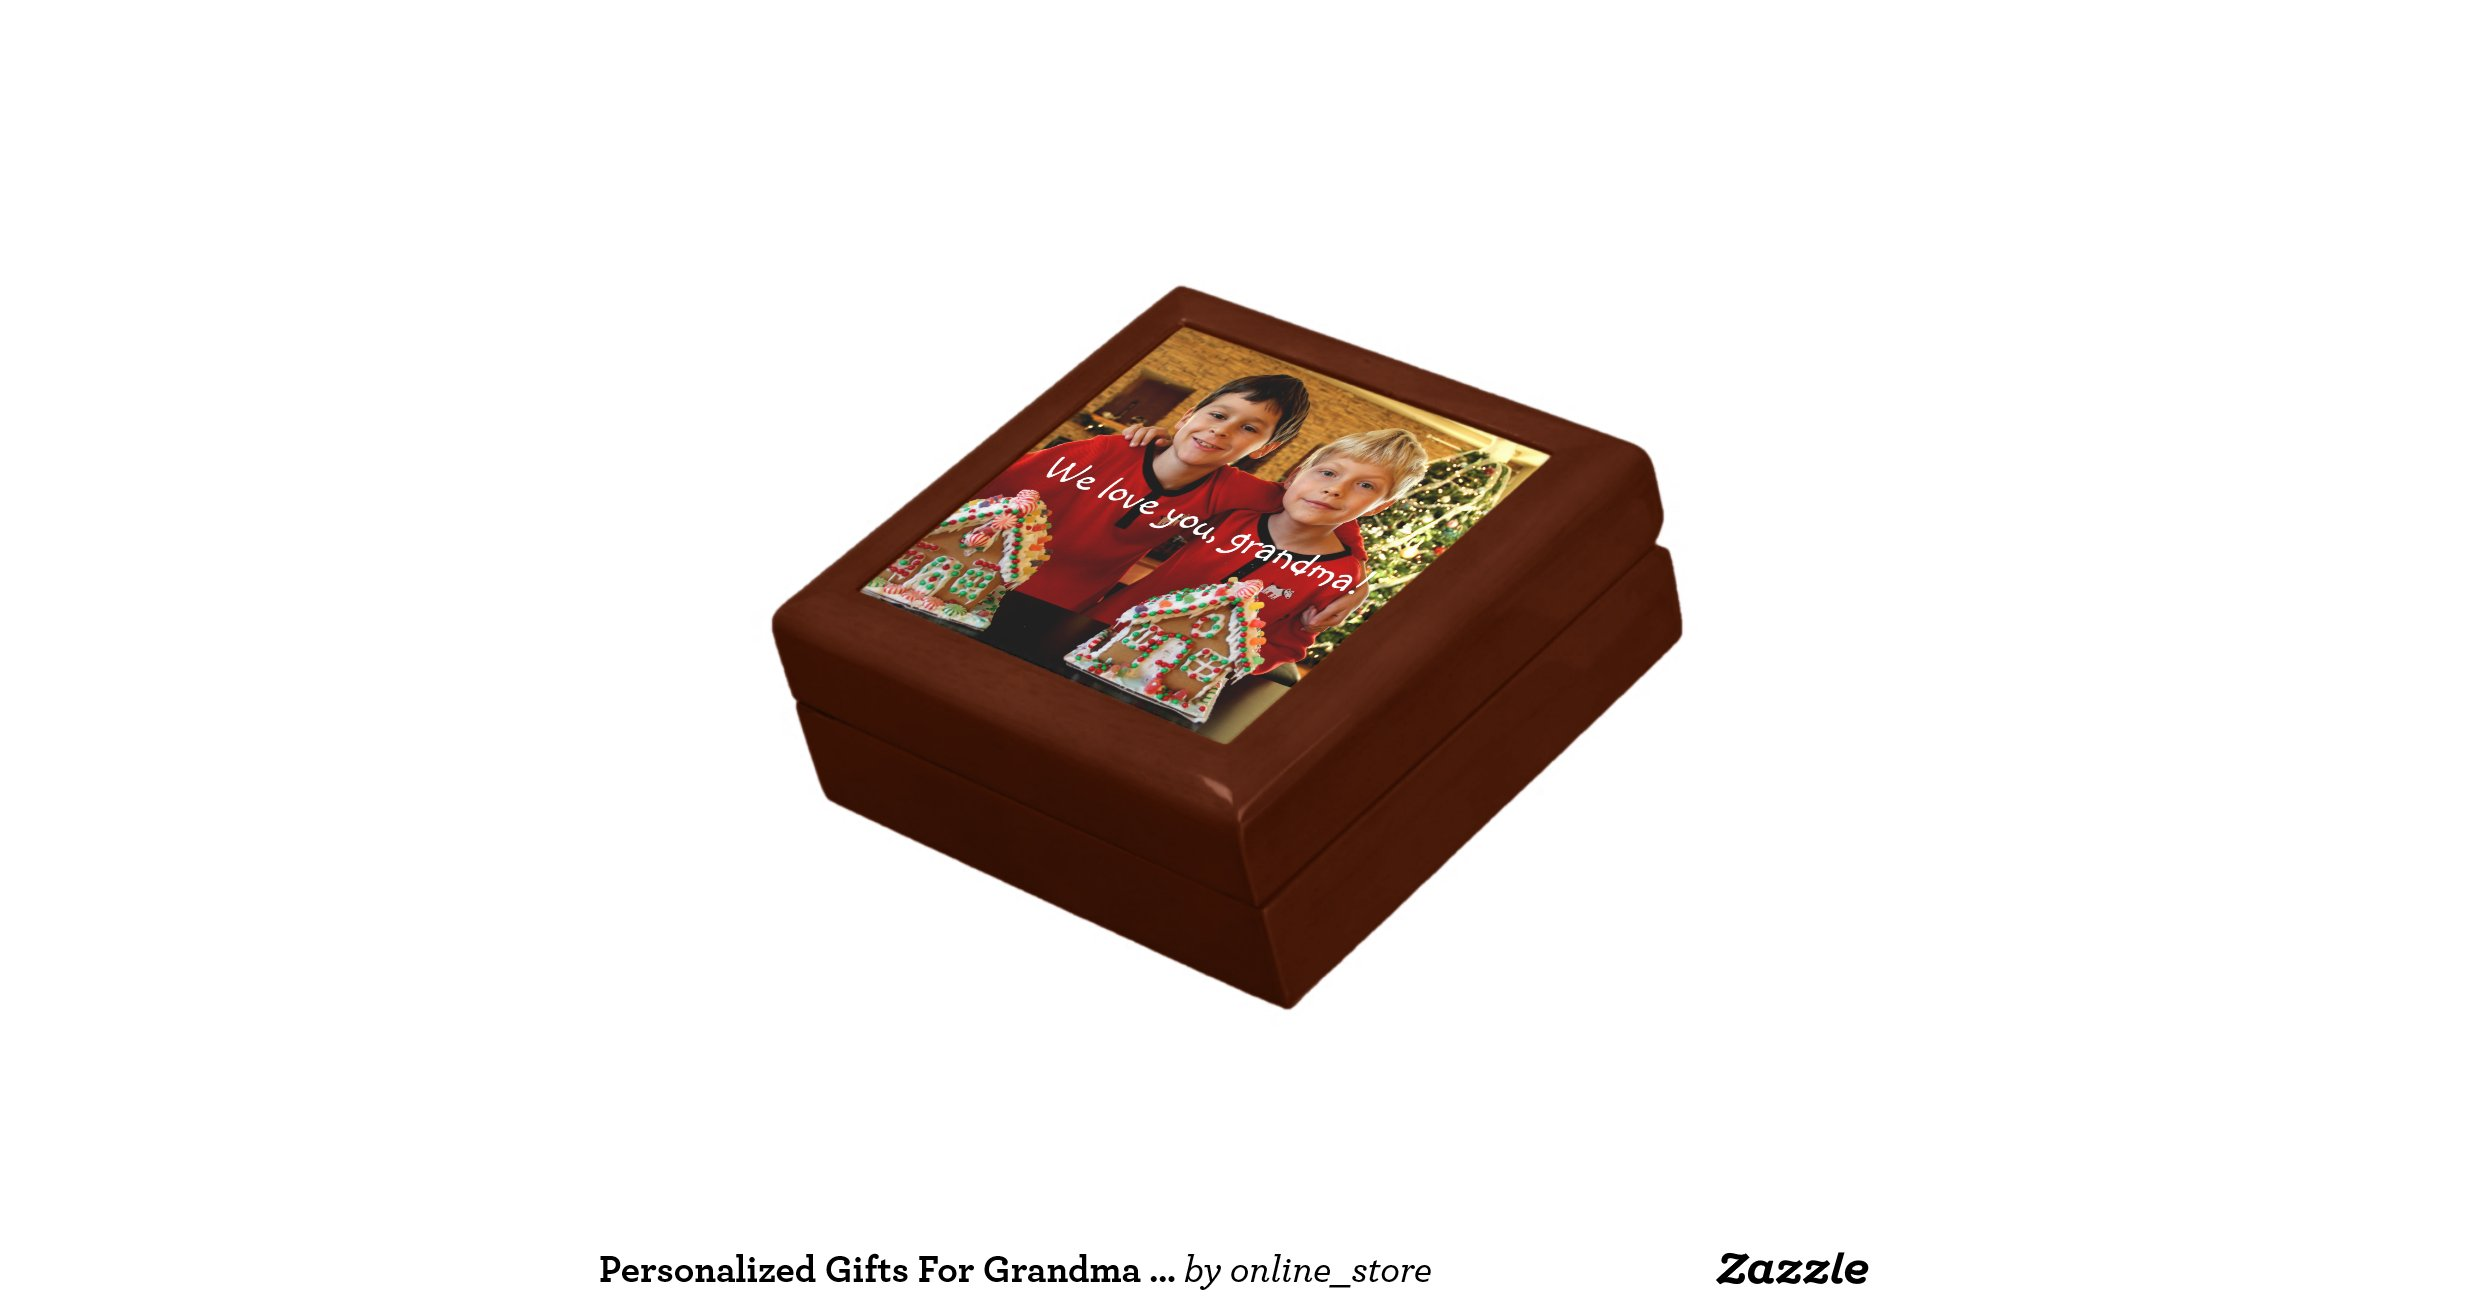 Personalized gifts for grandma small gift box